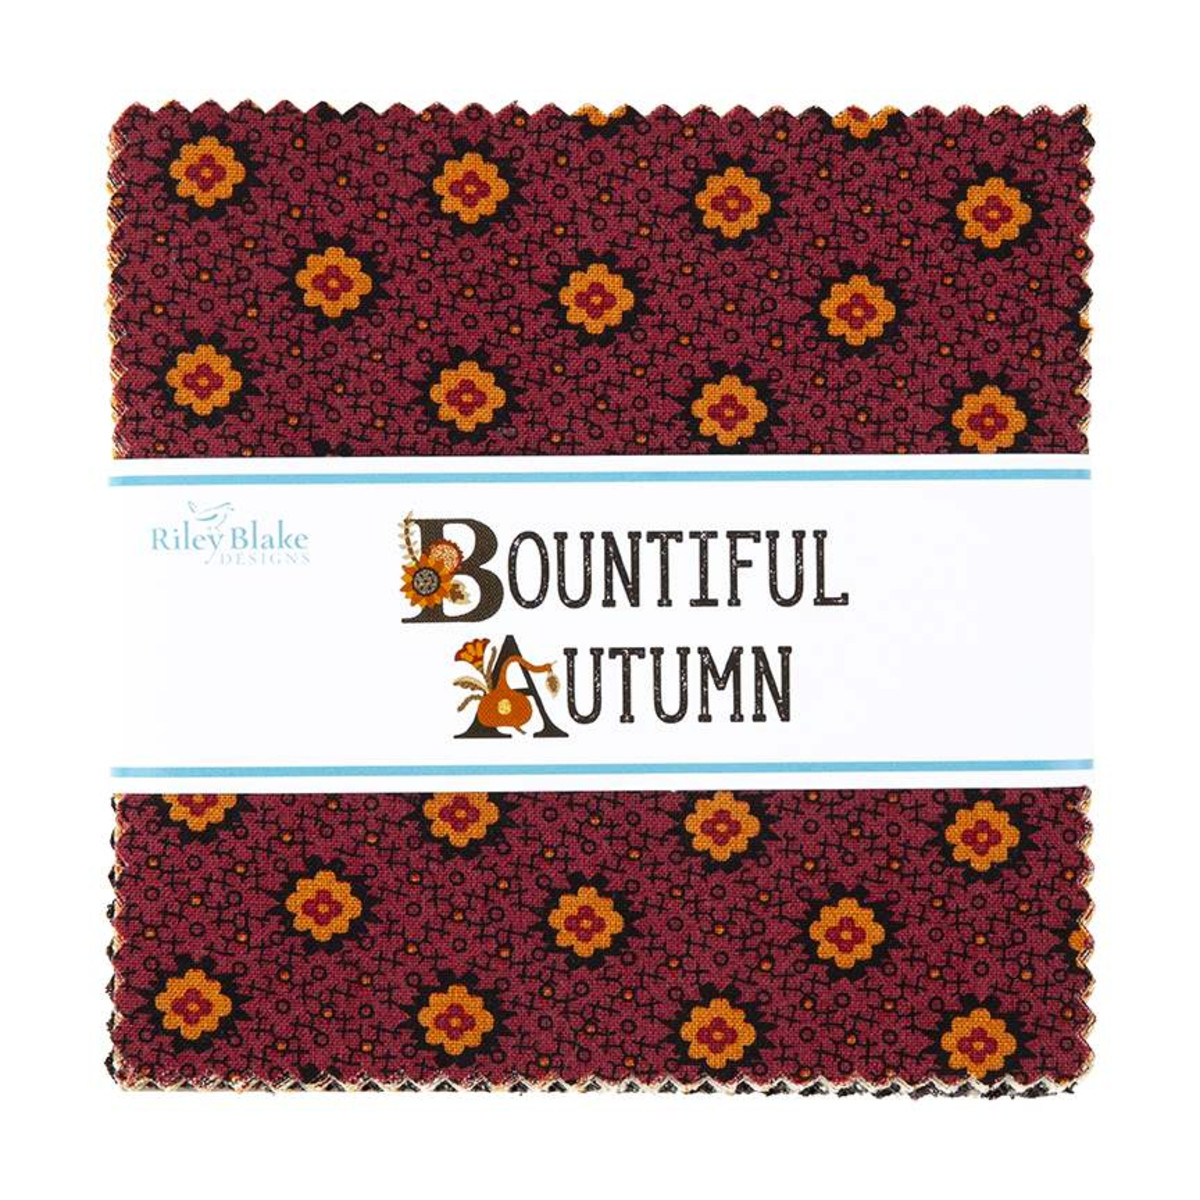 Riley Blake Charm Pack - Bountiful Autumn by Stacy West